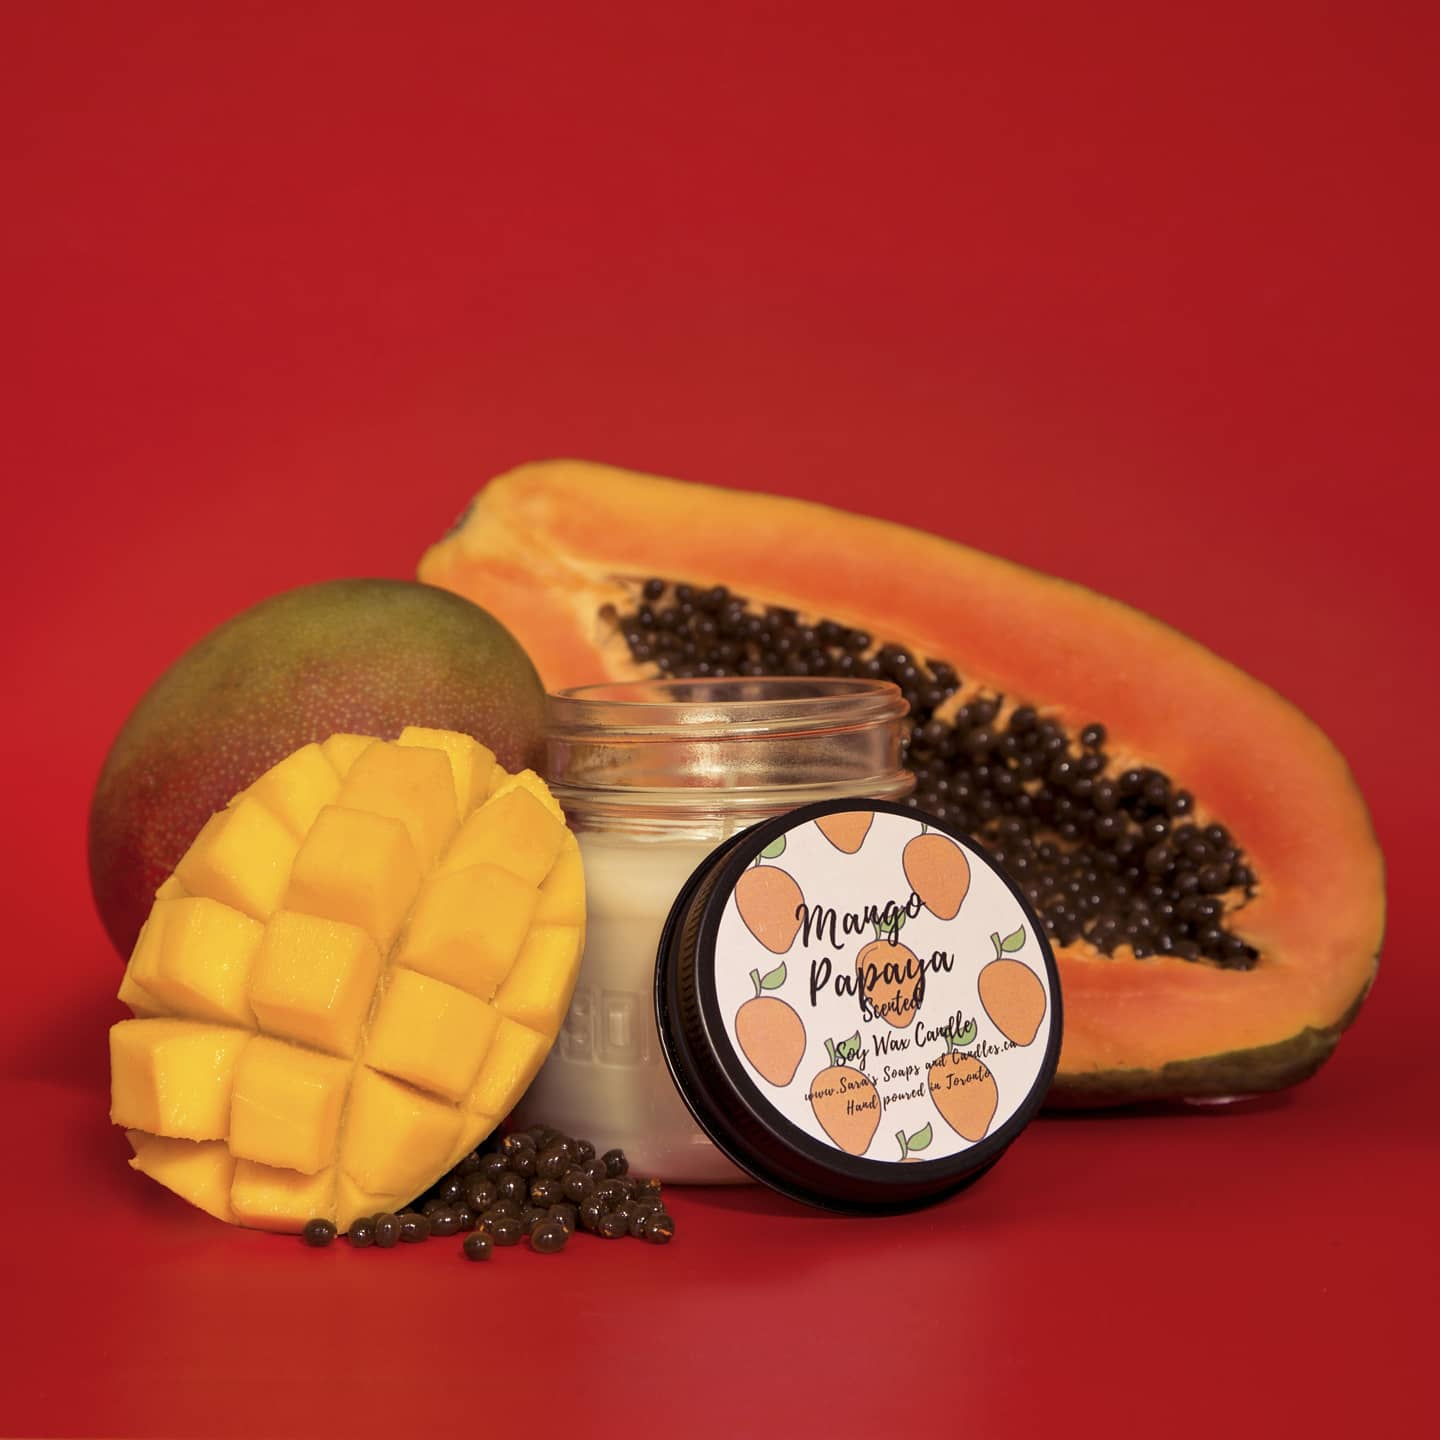 Mango papaya candle - 7.5 oz